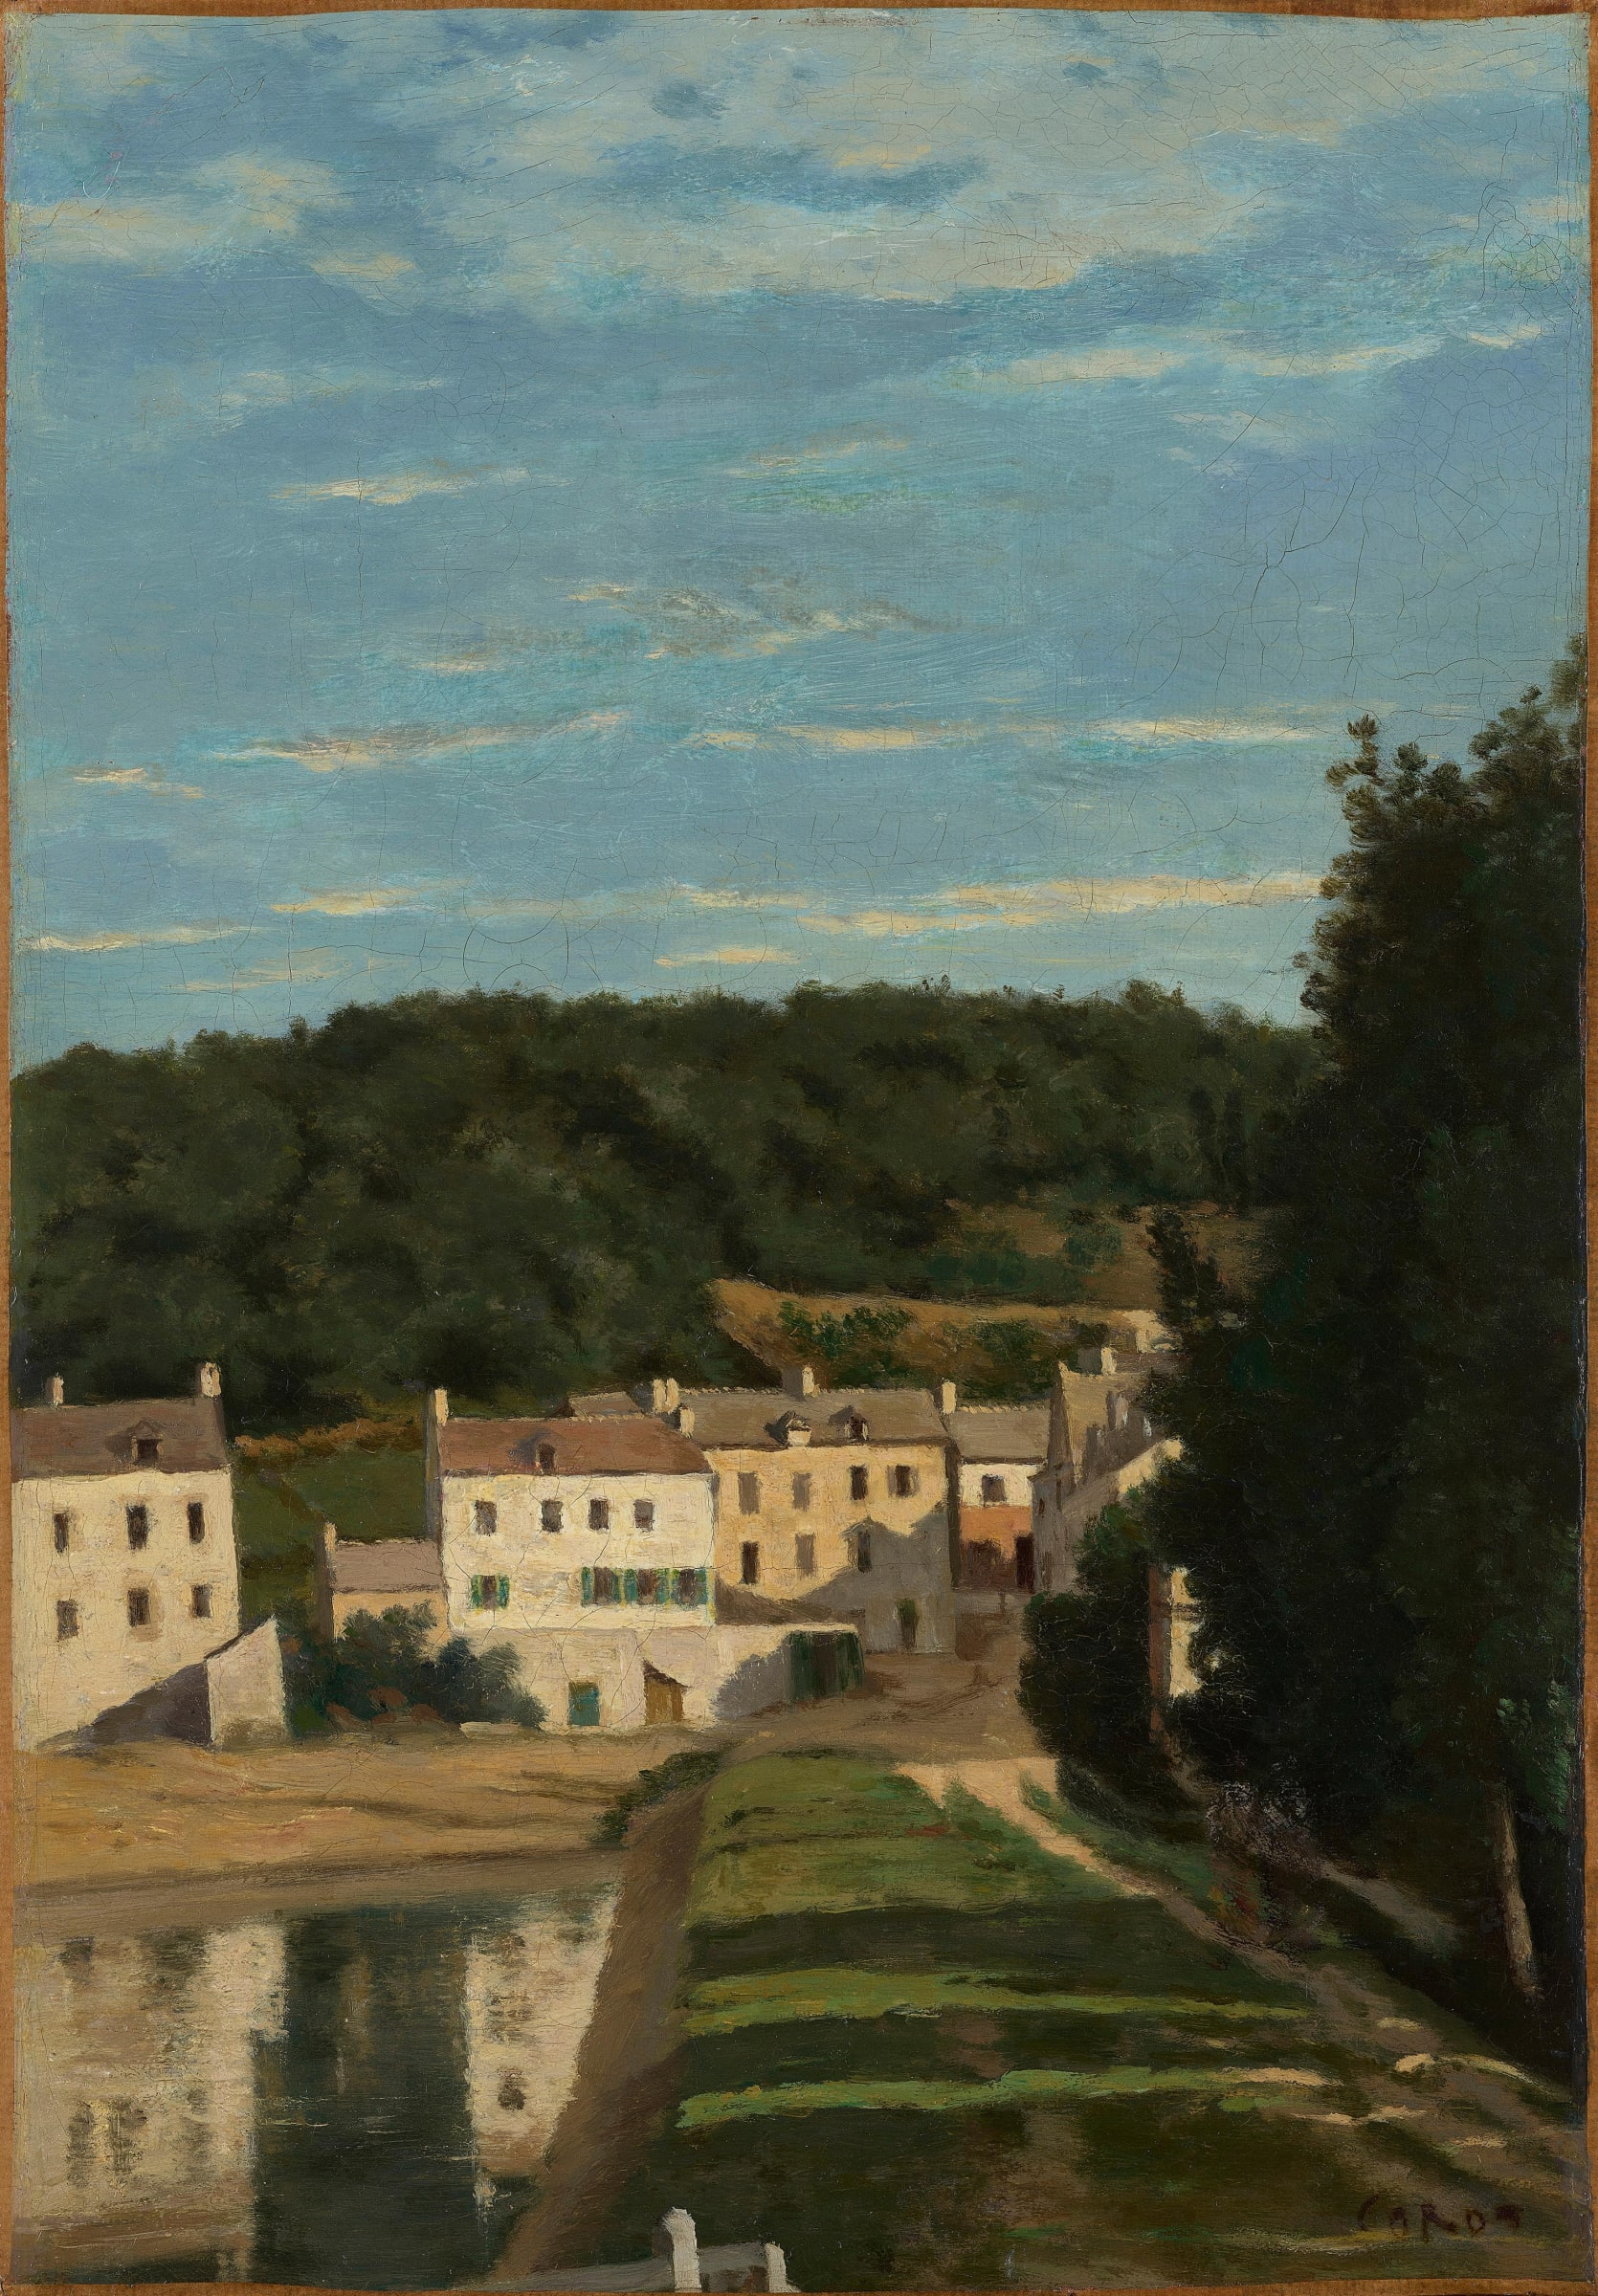 "<span class=""link fancybox-details-link""><a href=""/artists/30-jean-baptiste-camille-corot/works/9451-jean-baptiste-camille-corot-ville-davray.-le-chemin-de-corot-et-les-maisons-c.1840-1845/"">View Detail Page</a></span><div class=""artist""><span class=""artist""><strong>Jean Baptiste Camille Corot</strong></span></div>